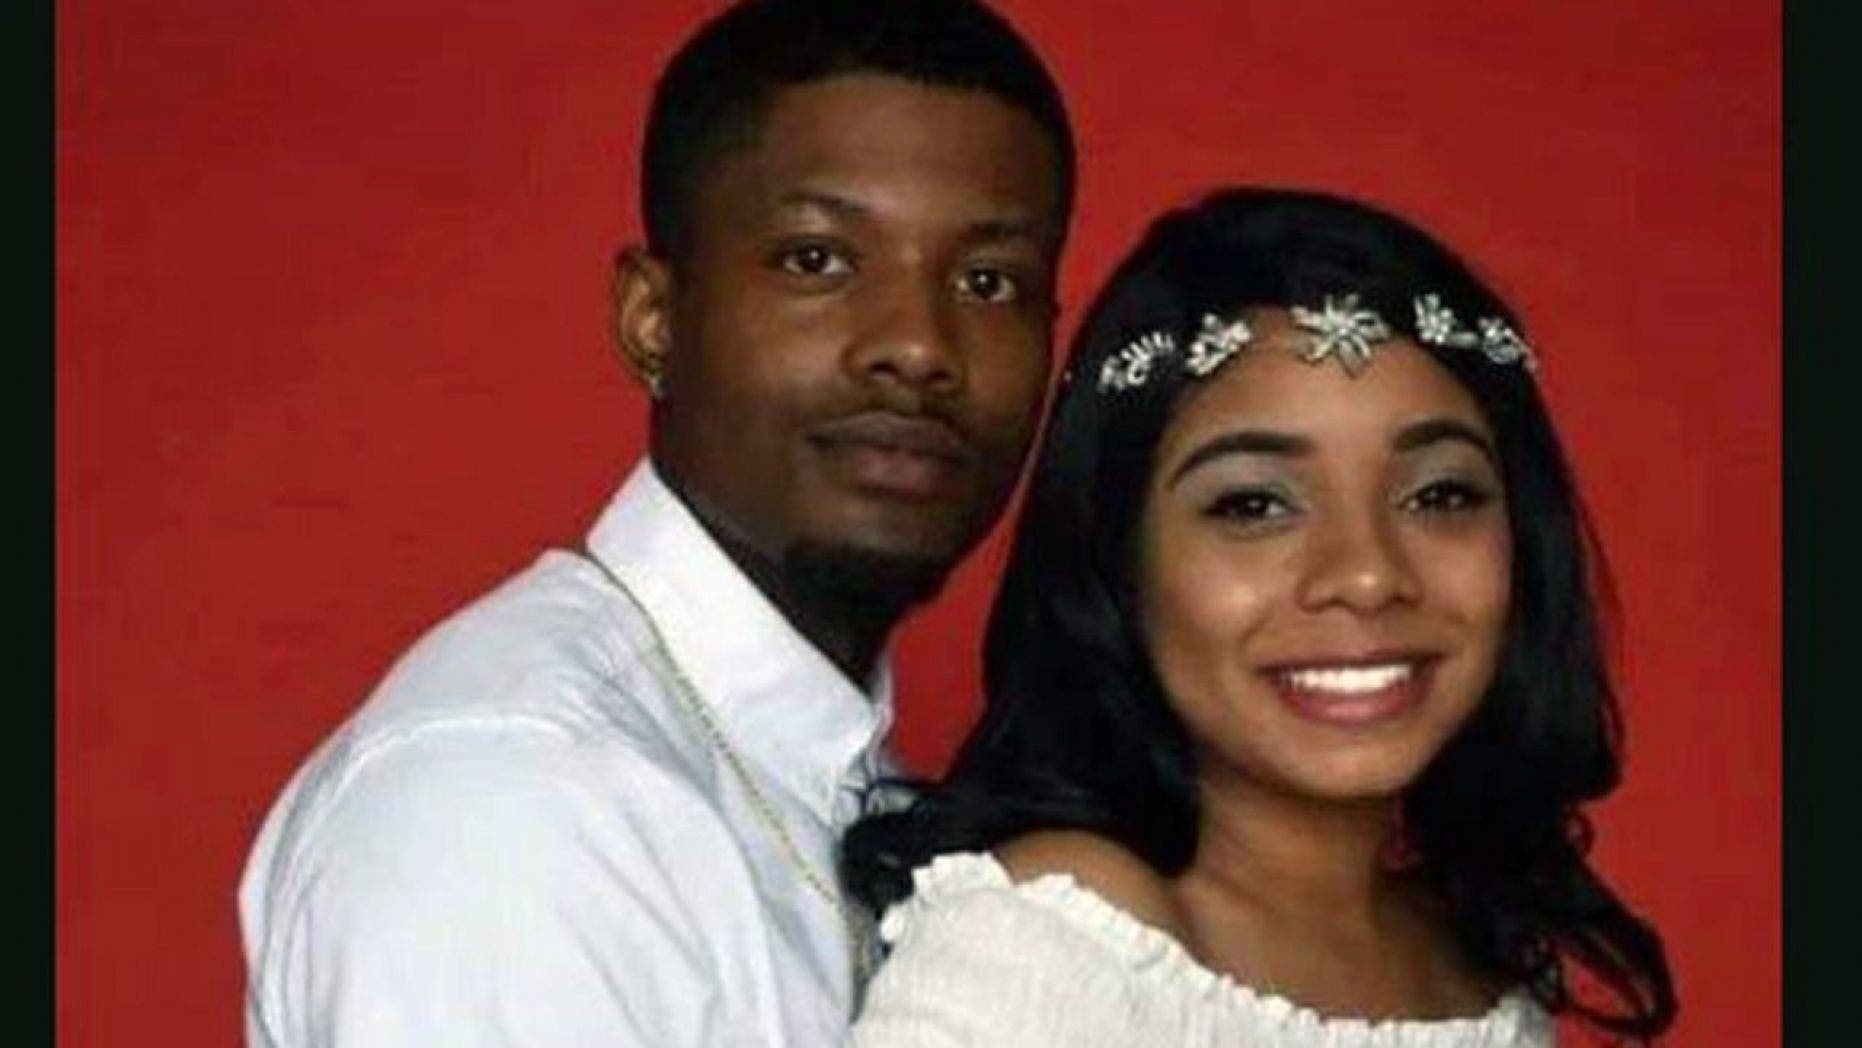 Skylar Williams, right, was fatally shot by her ex-boyfriend, Ty'rell Pounds, authorities said Wednesday.